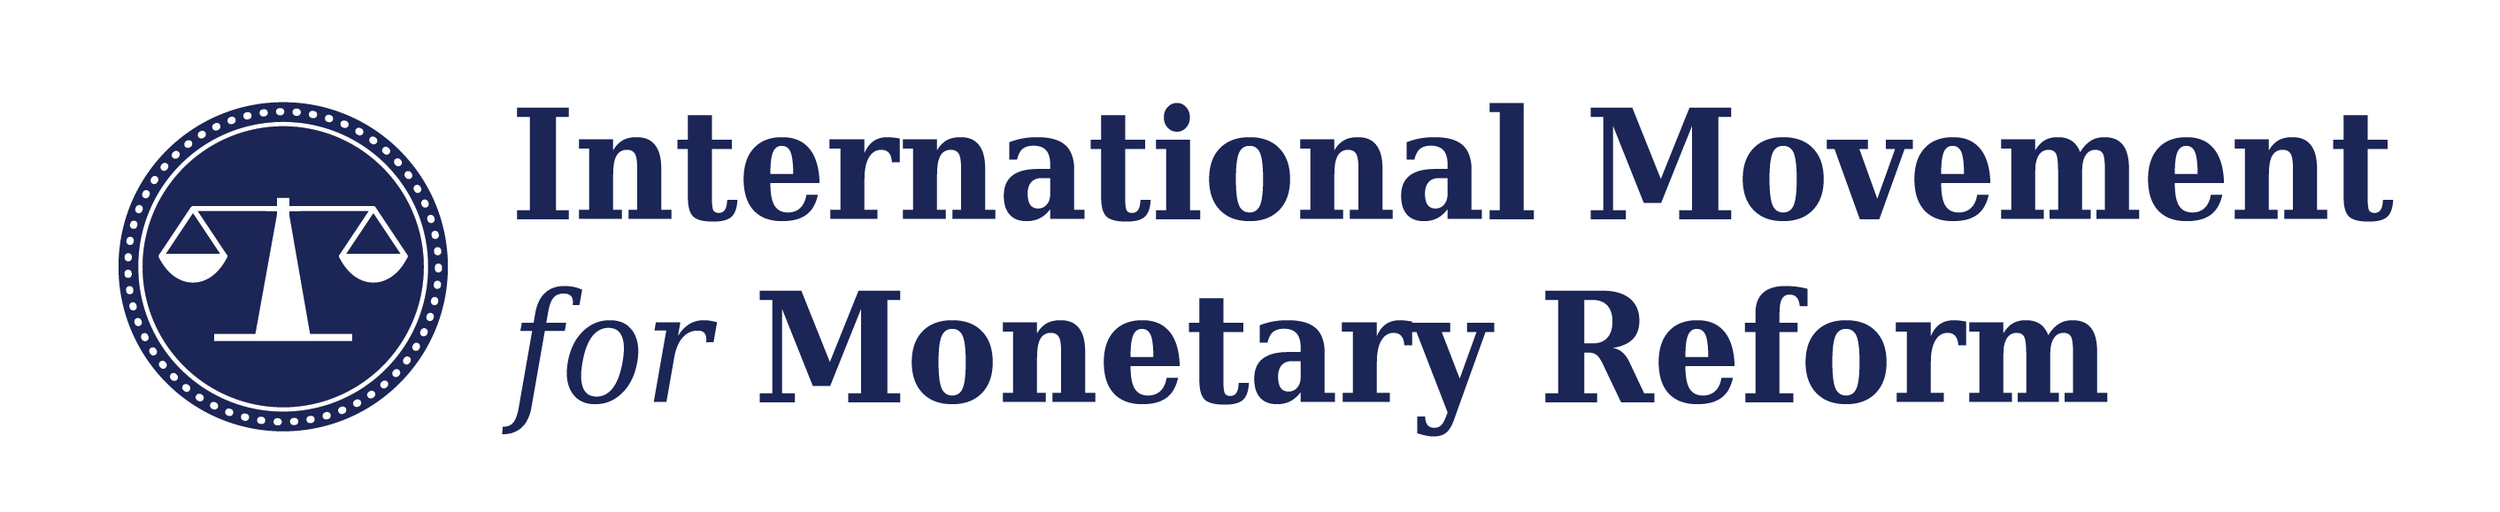 logo International Movement for Monetary Reform.png